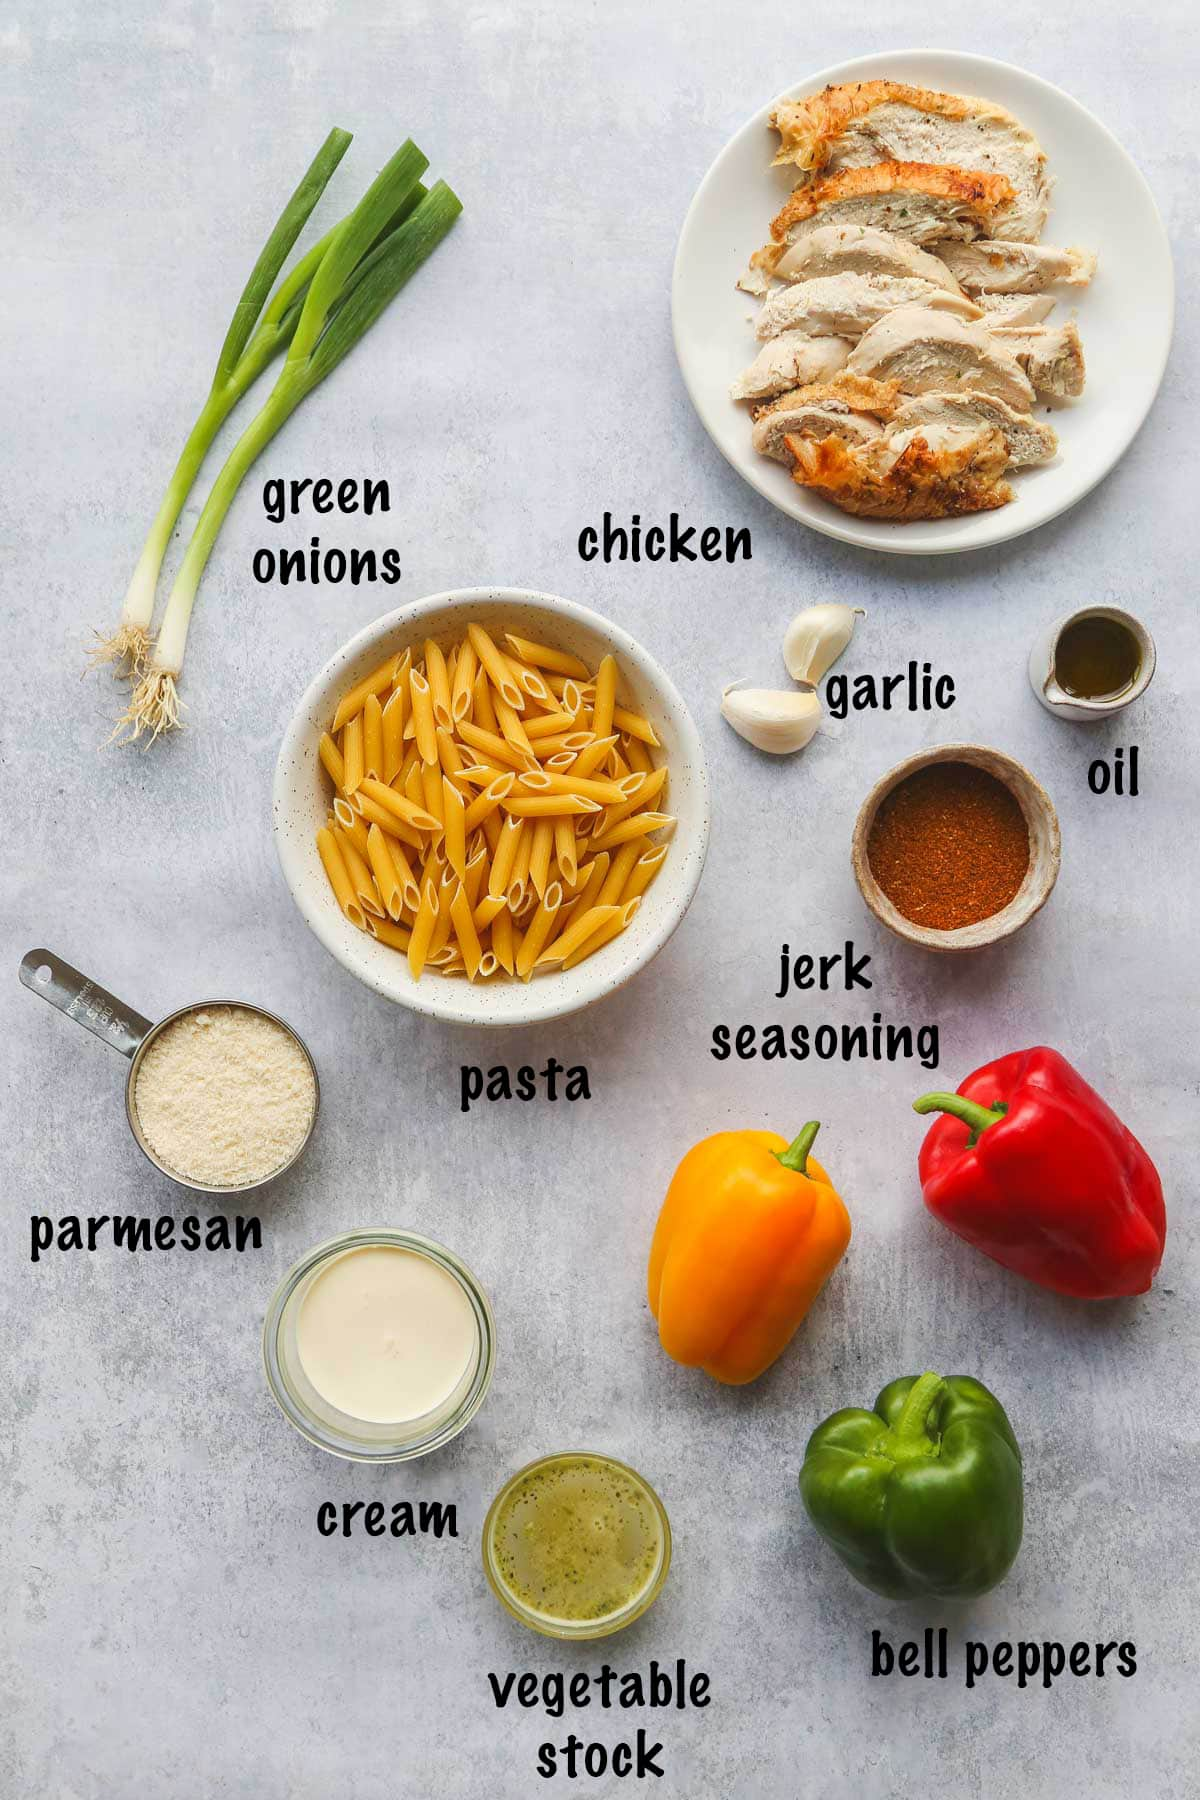 Rasta Pasta ingredients in a picture